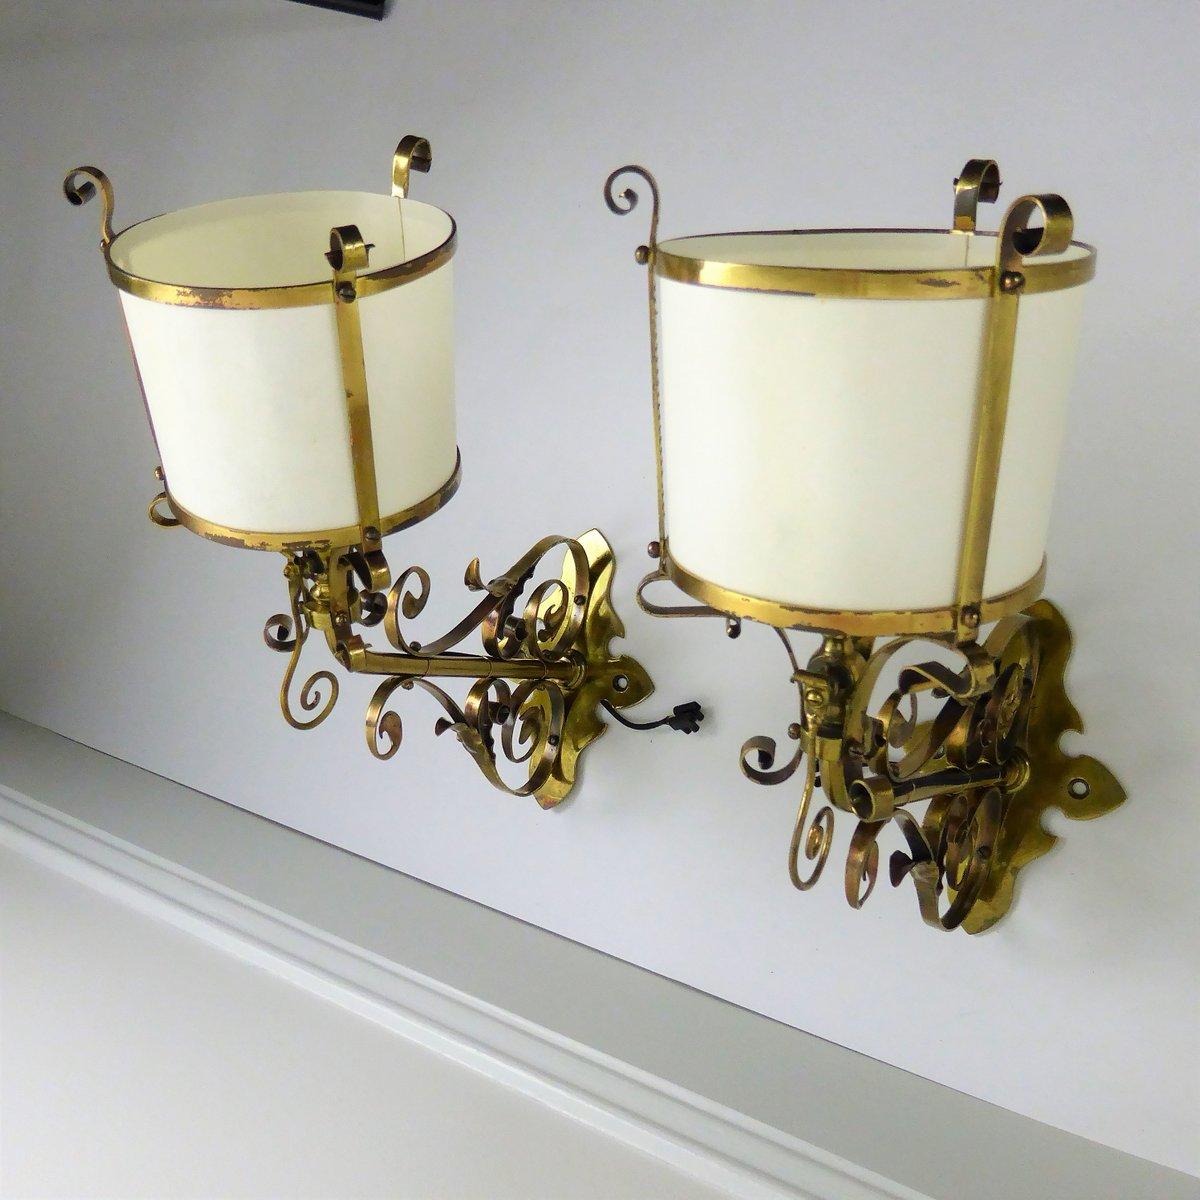 English arts crafts brass wall lamps 1900s set of 2 for sale at english arts crafts brass wall lamps 1900s set of 2 aloadofball Choice Image